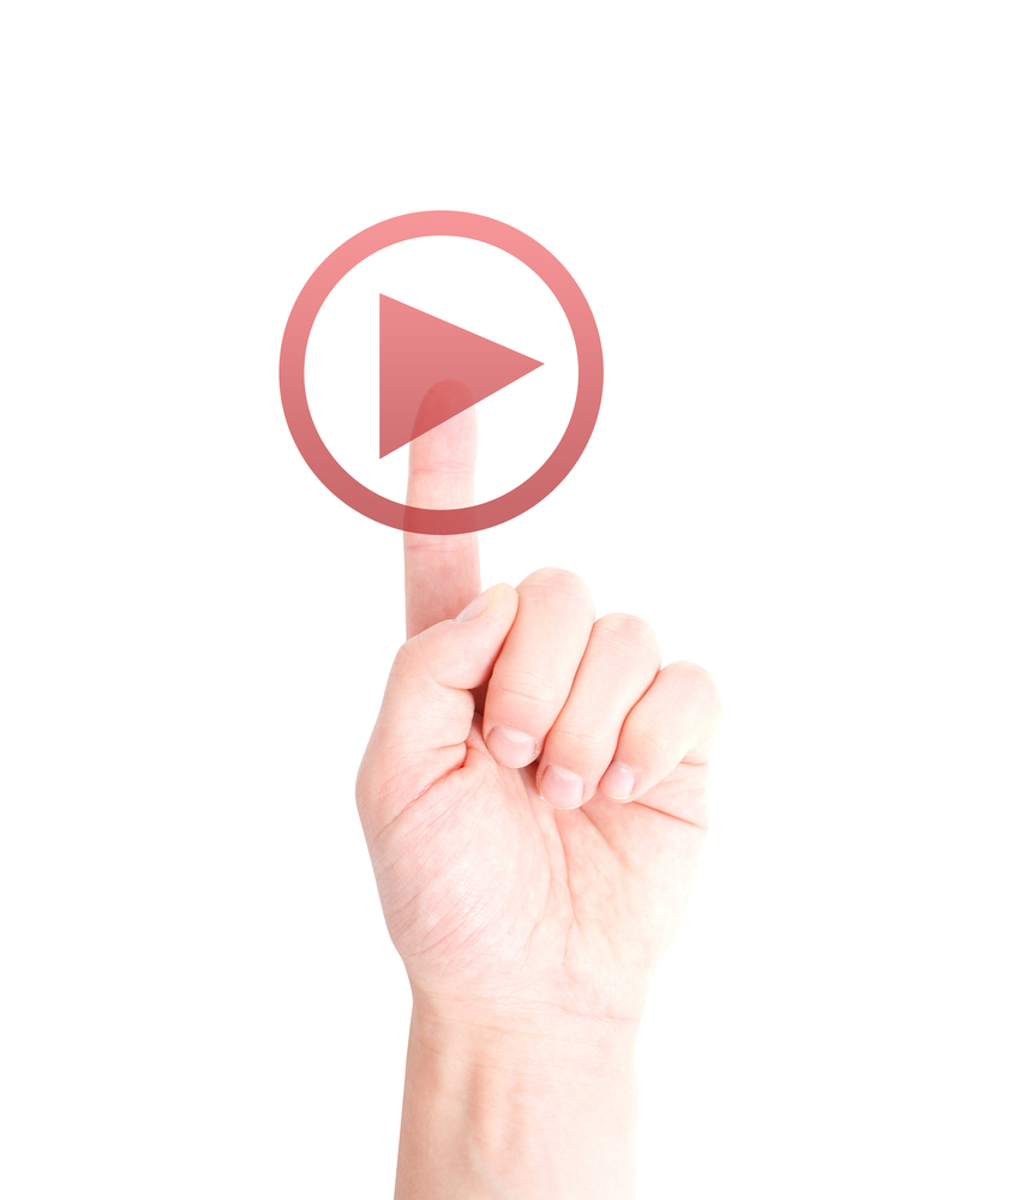 5 One-minute videos that drive business and help you get more clients